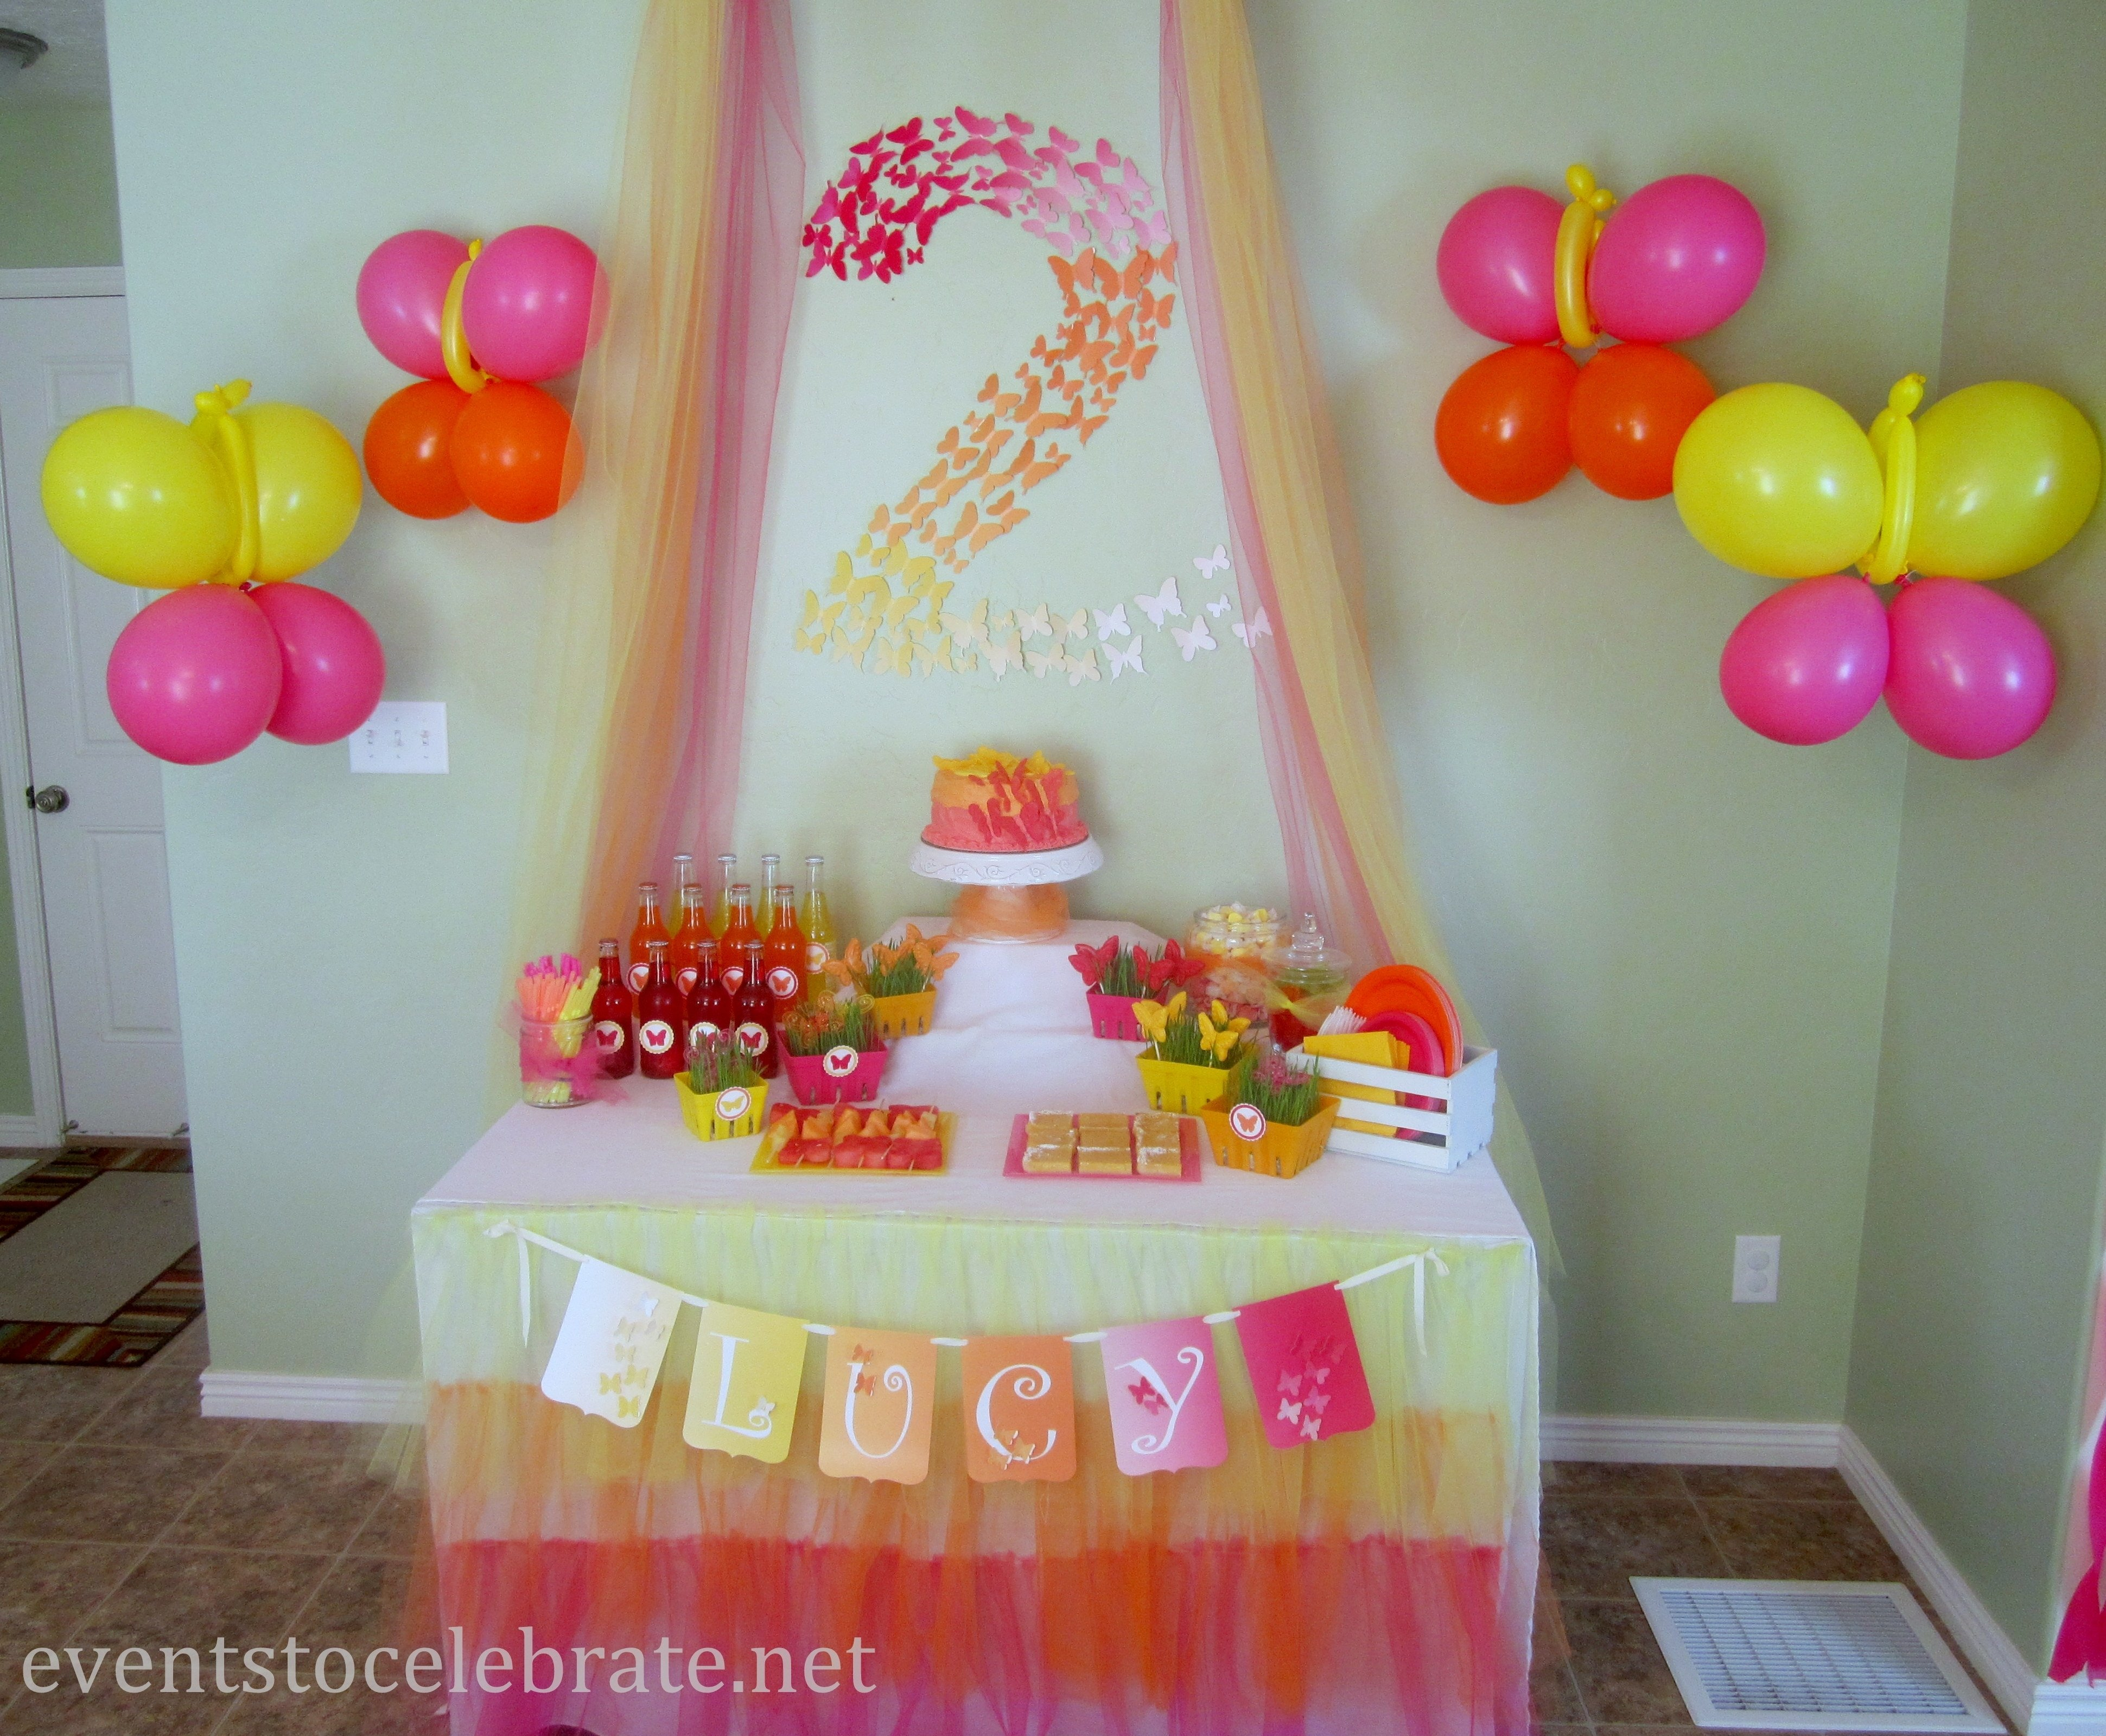 10 Cute Ideas For Birthday Parties At Home Adult Party Decorations Decoration Dma